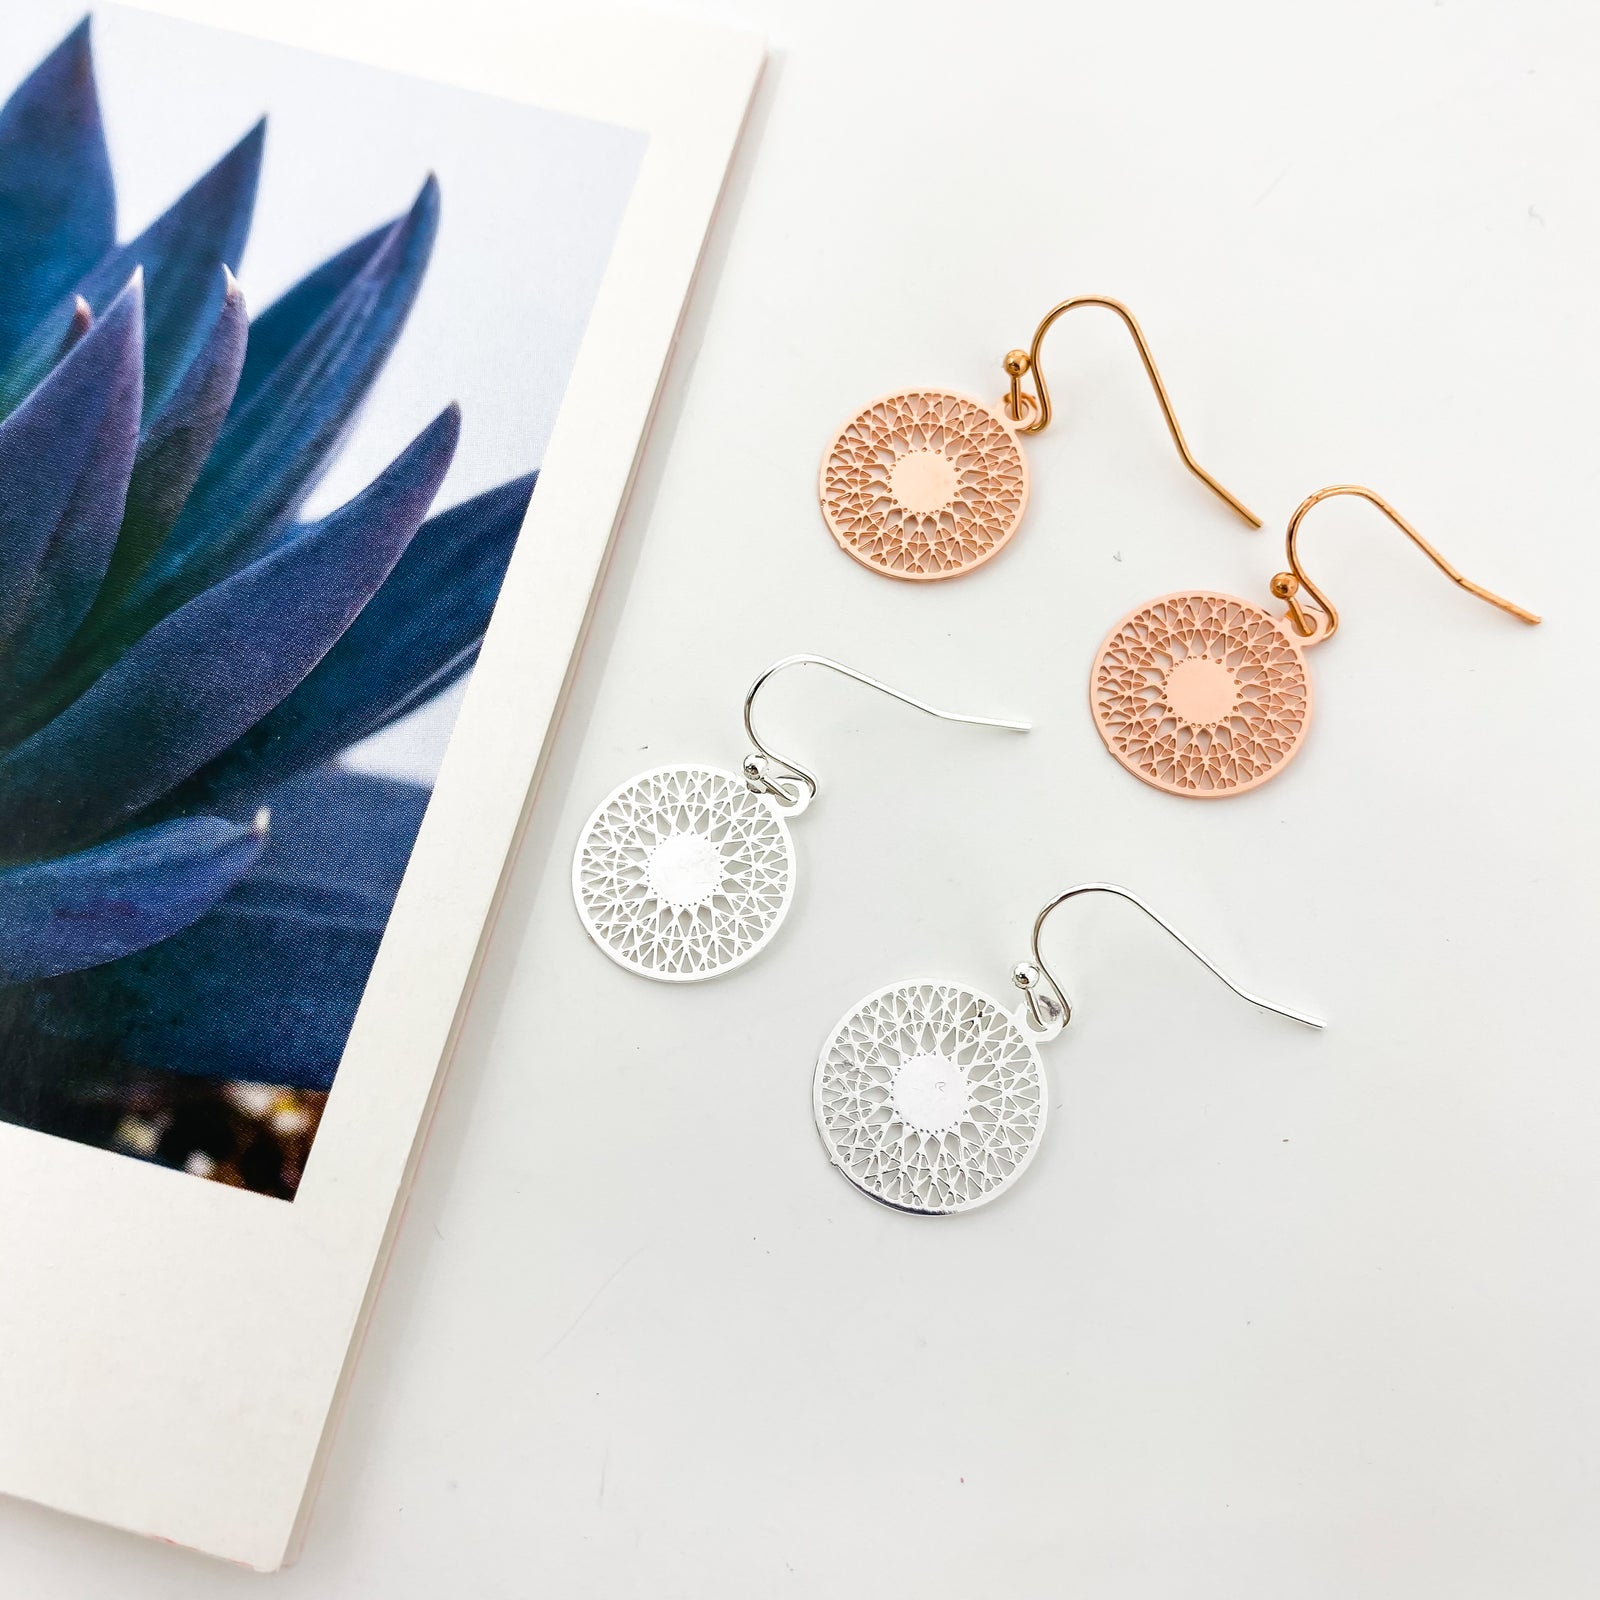 MINI SPHERE FILIGREE EARRINGS | STYLE OPTIONS